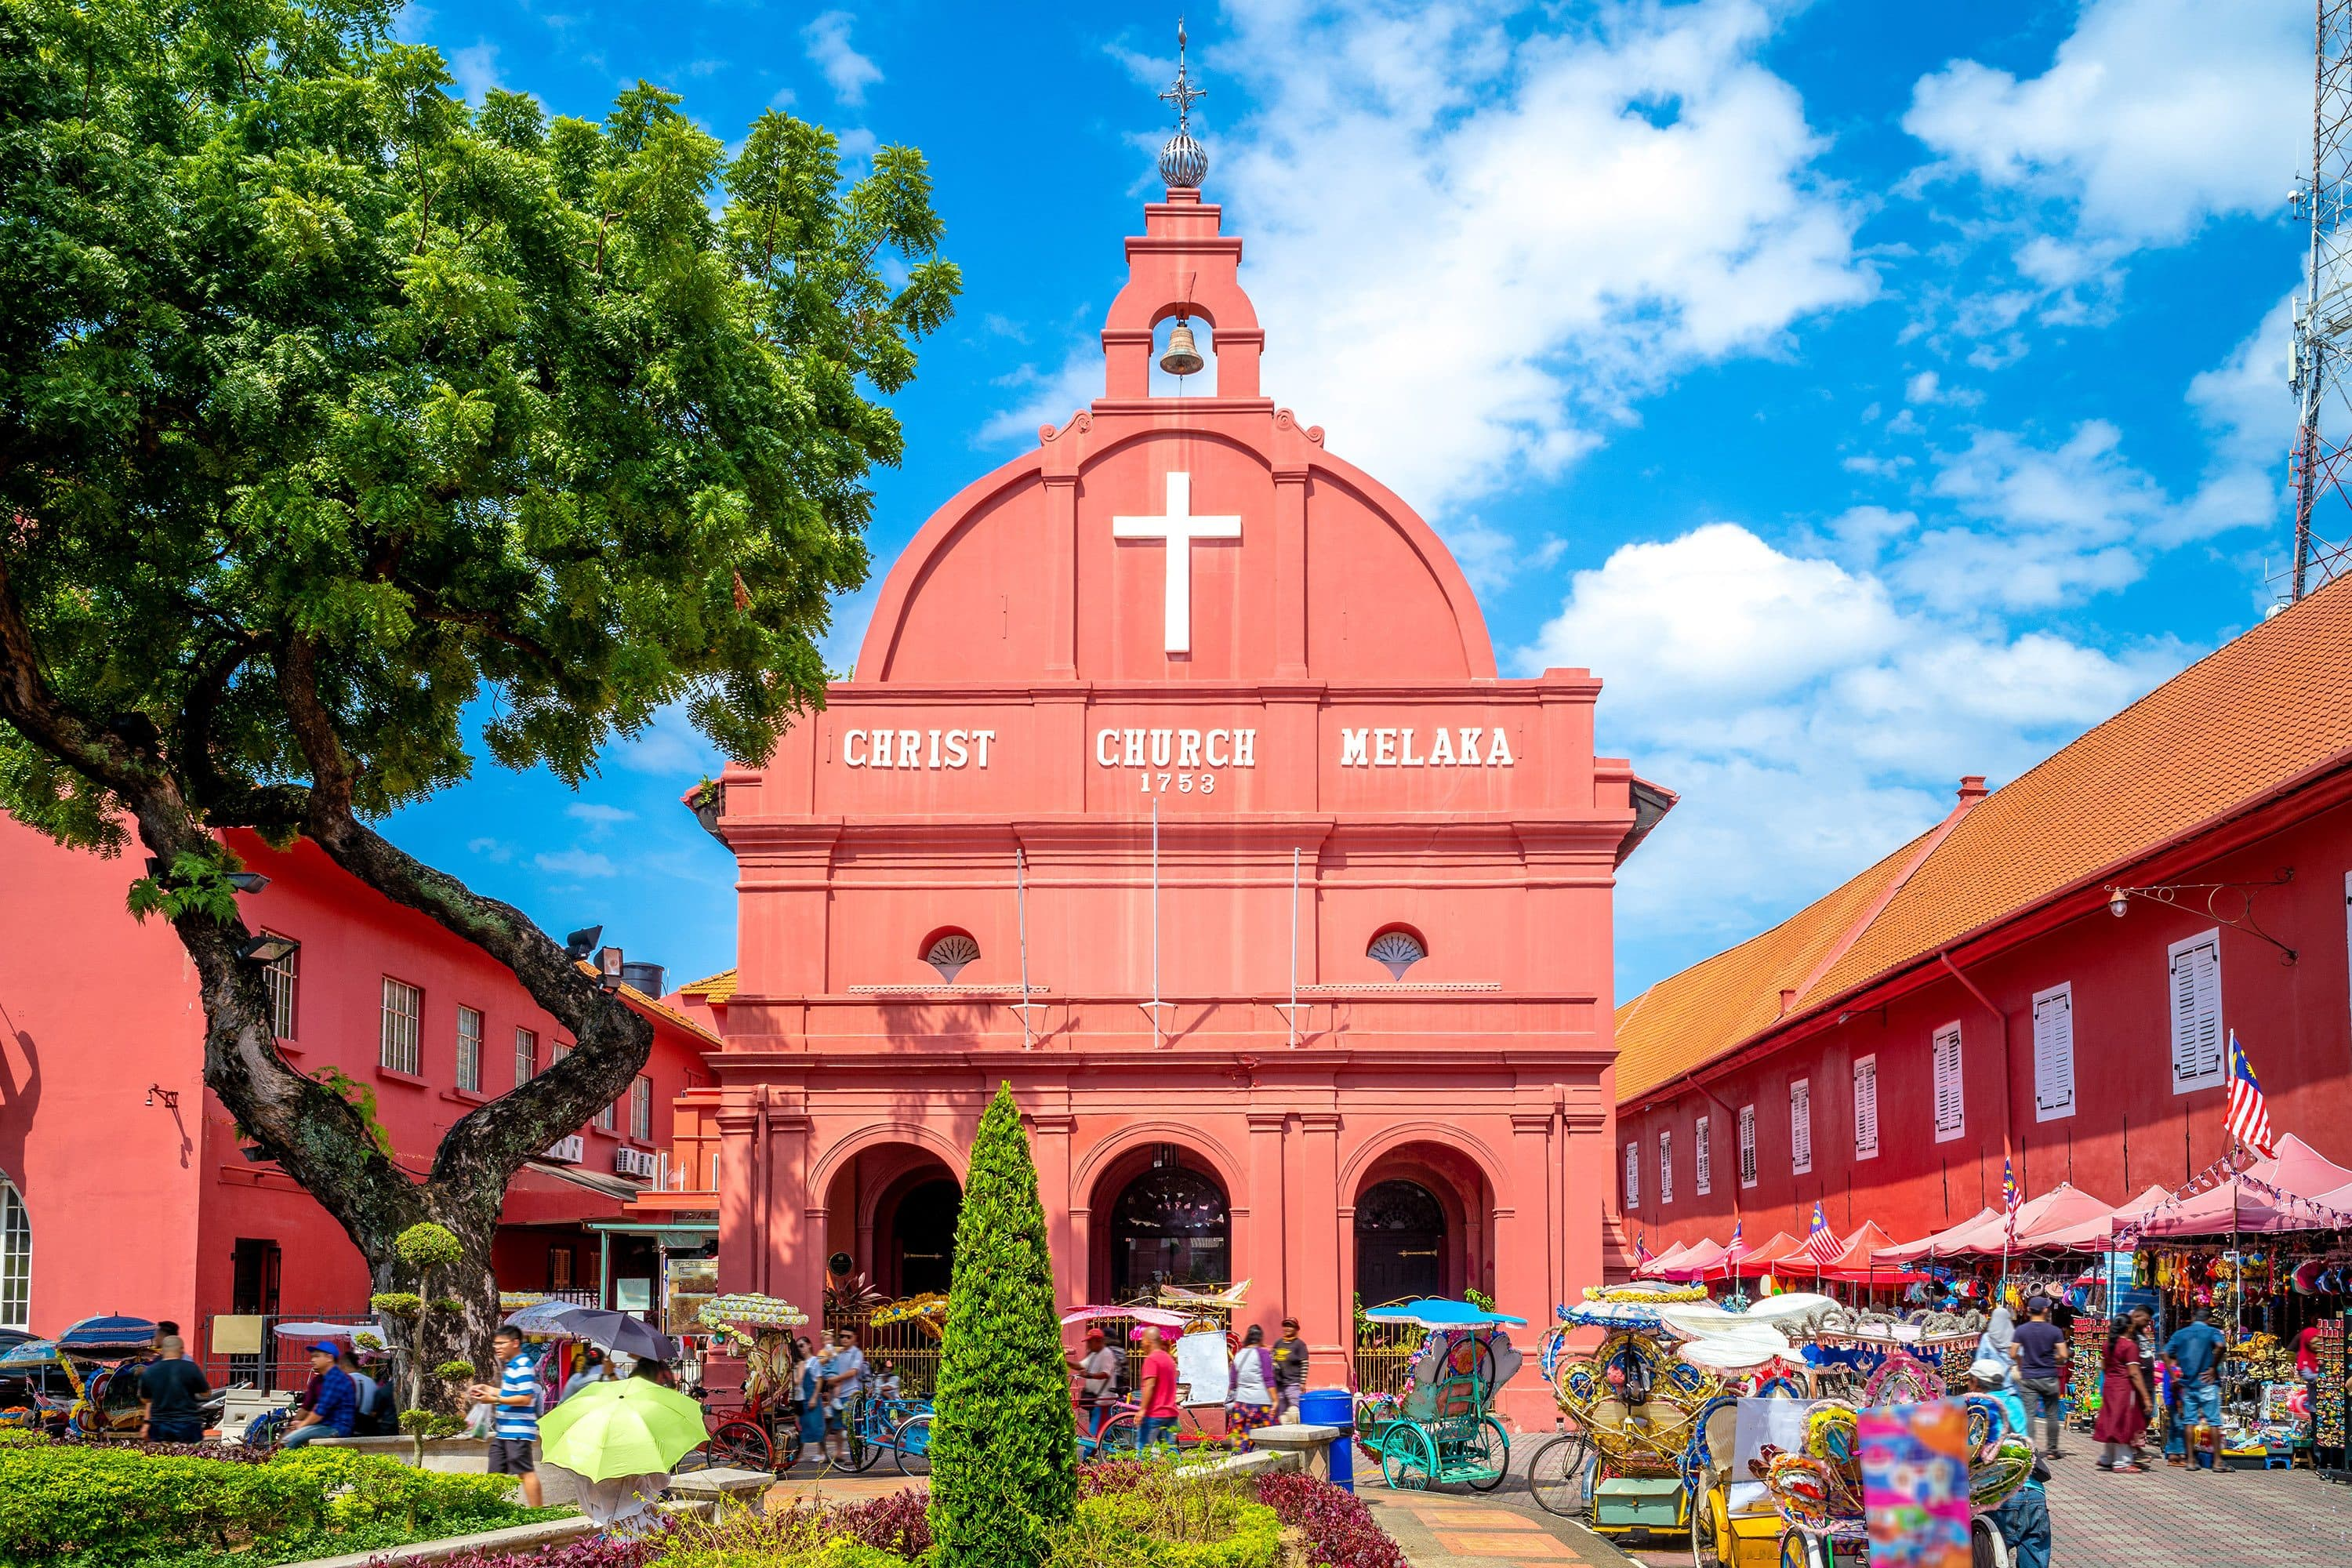 Church and market in Malaka